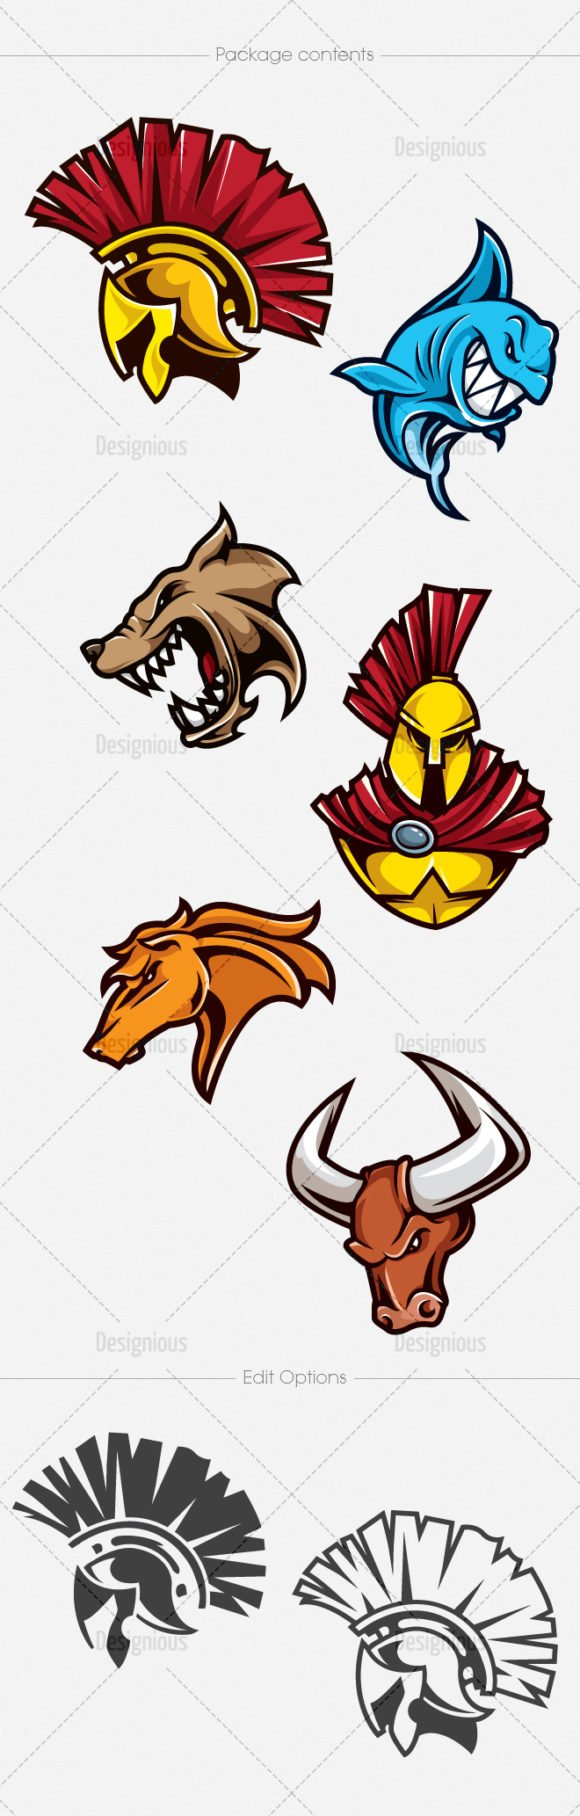 Mascots Vector Pack 8 2